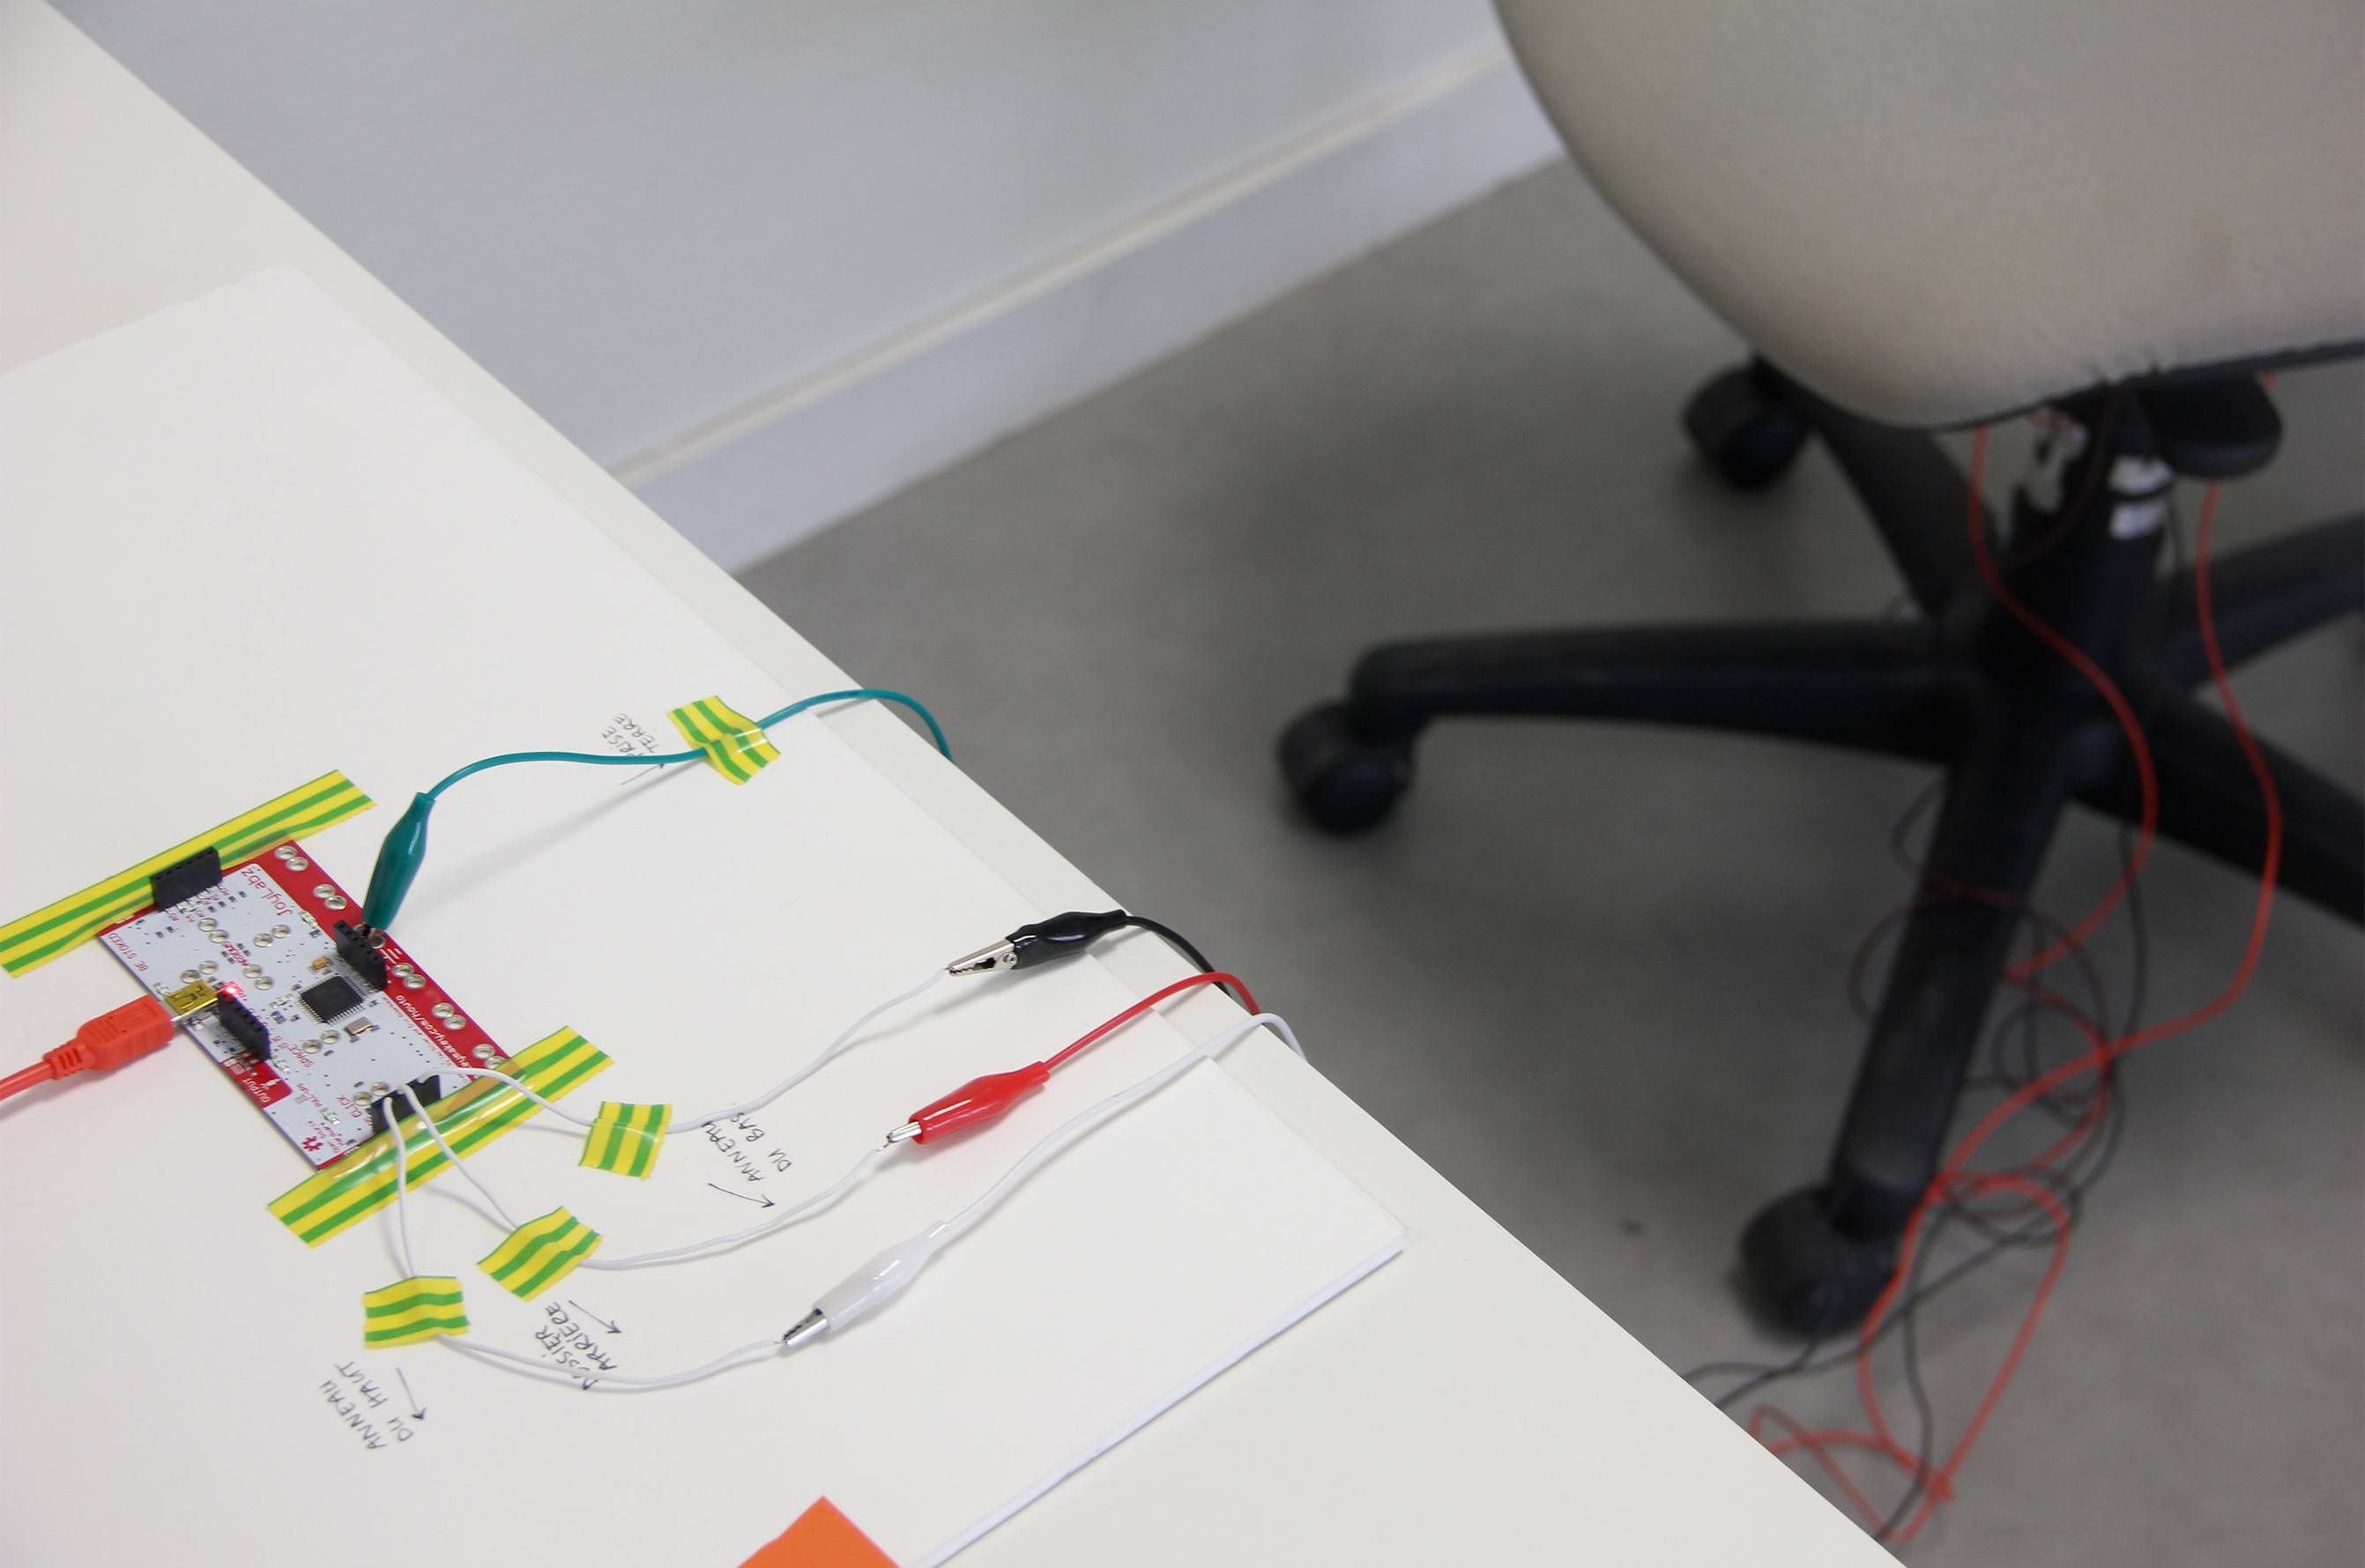 kalla_workshop_arduino_makey_makey_connected_chair_cable-maxime-cavallie-pierre-felix-so